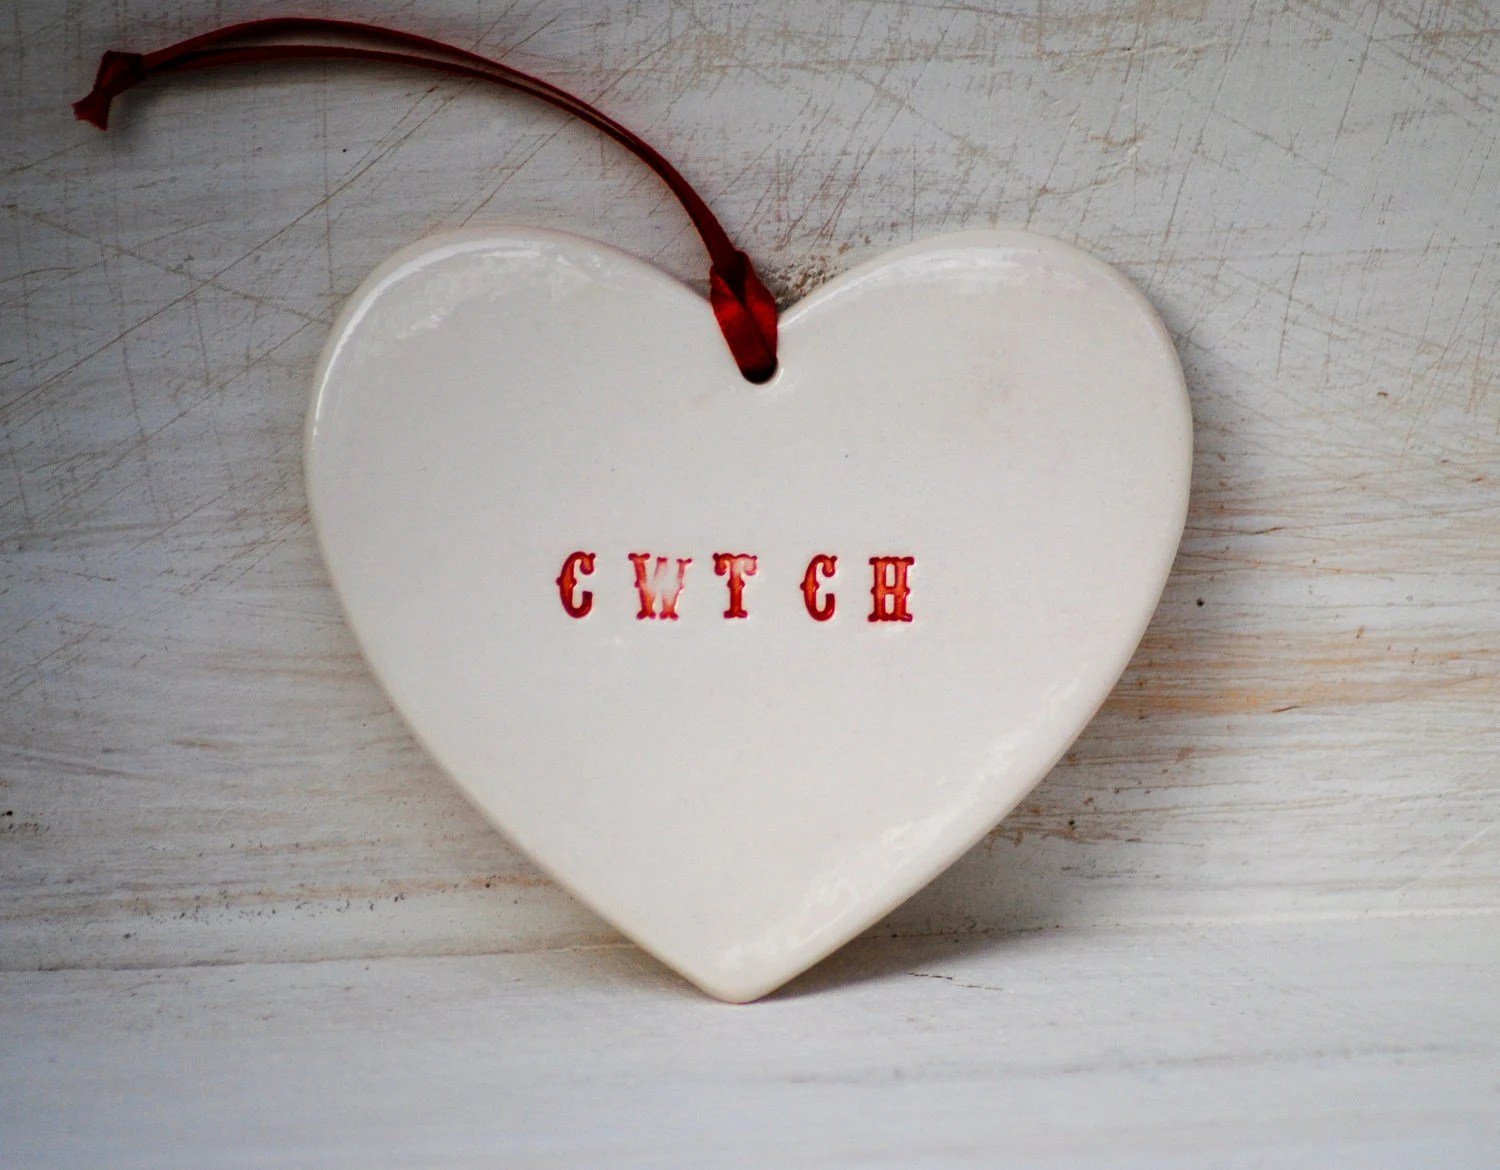 Cwtch Heart Ornament  in Romantic warm Red Welsh for Hug Or Cuddle